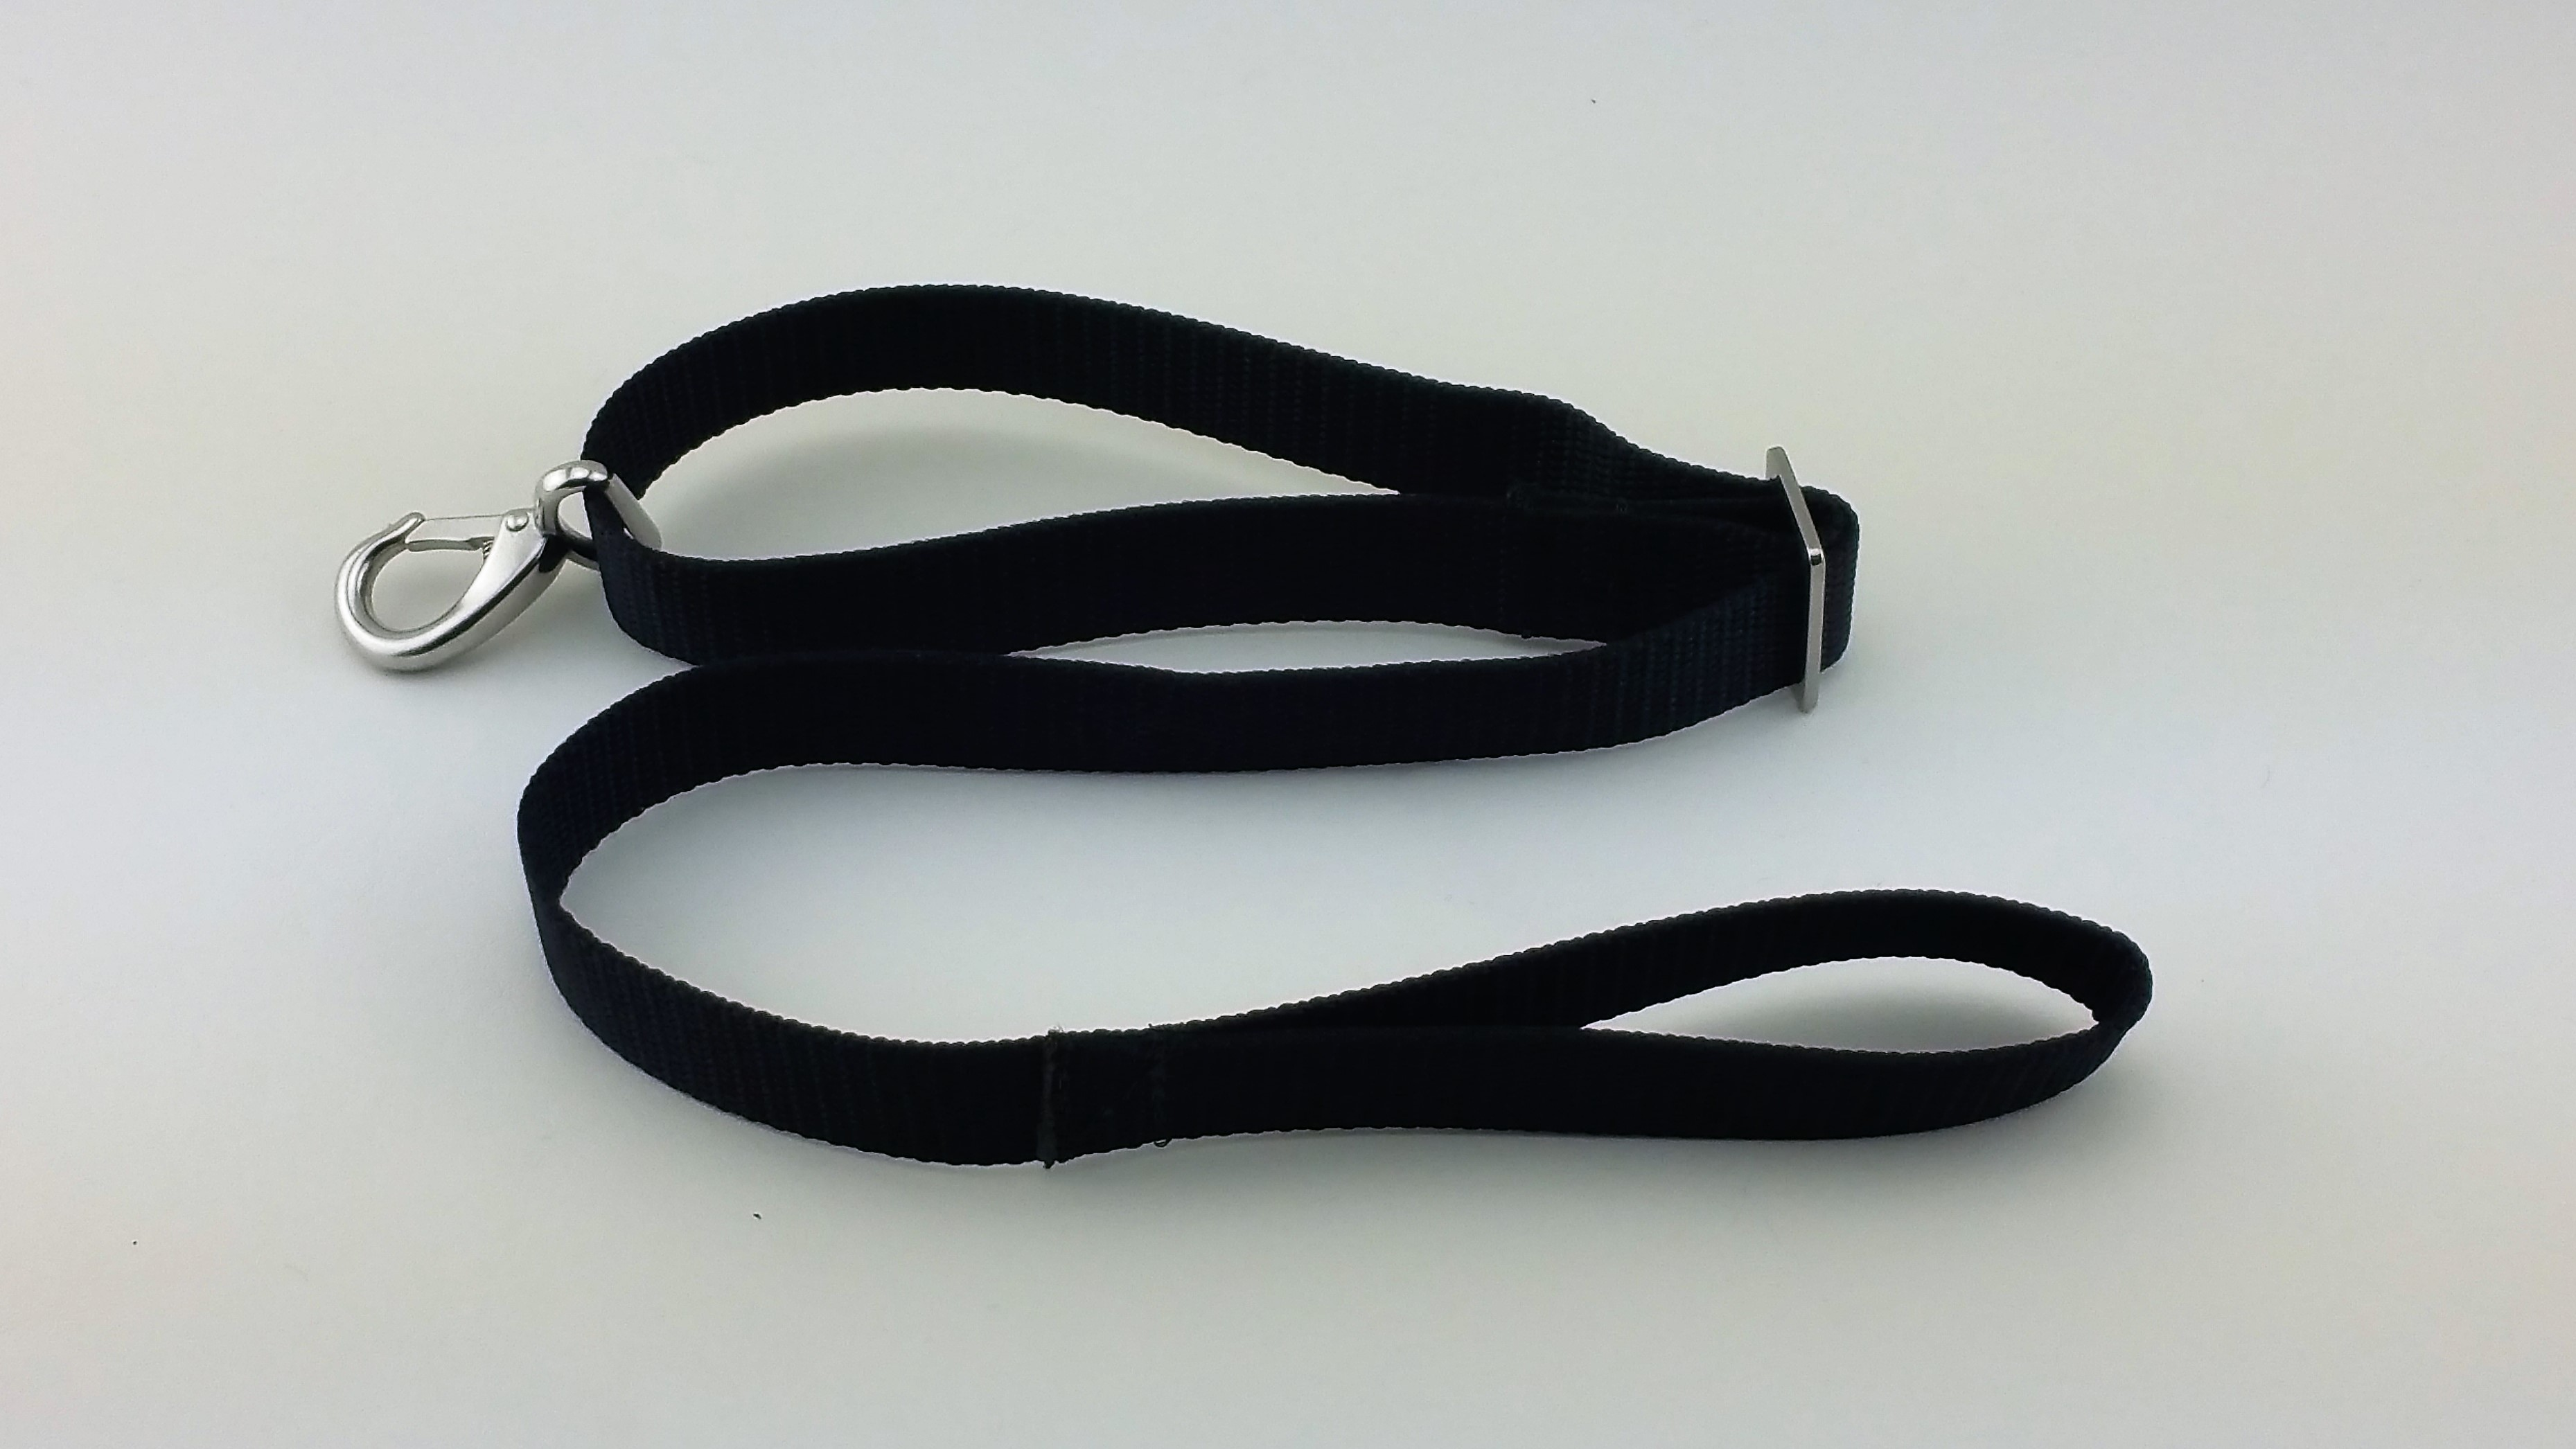 Heavy duty single snap hook bimini top strap